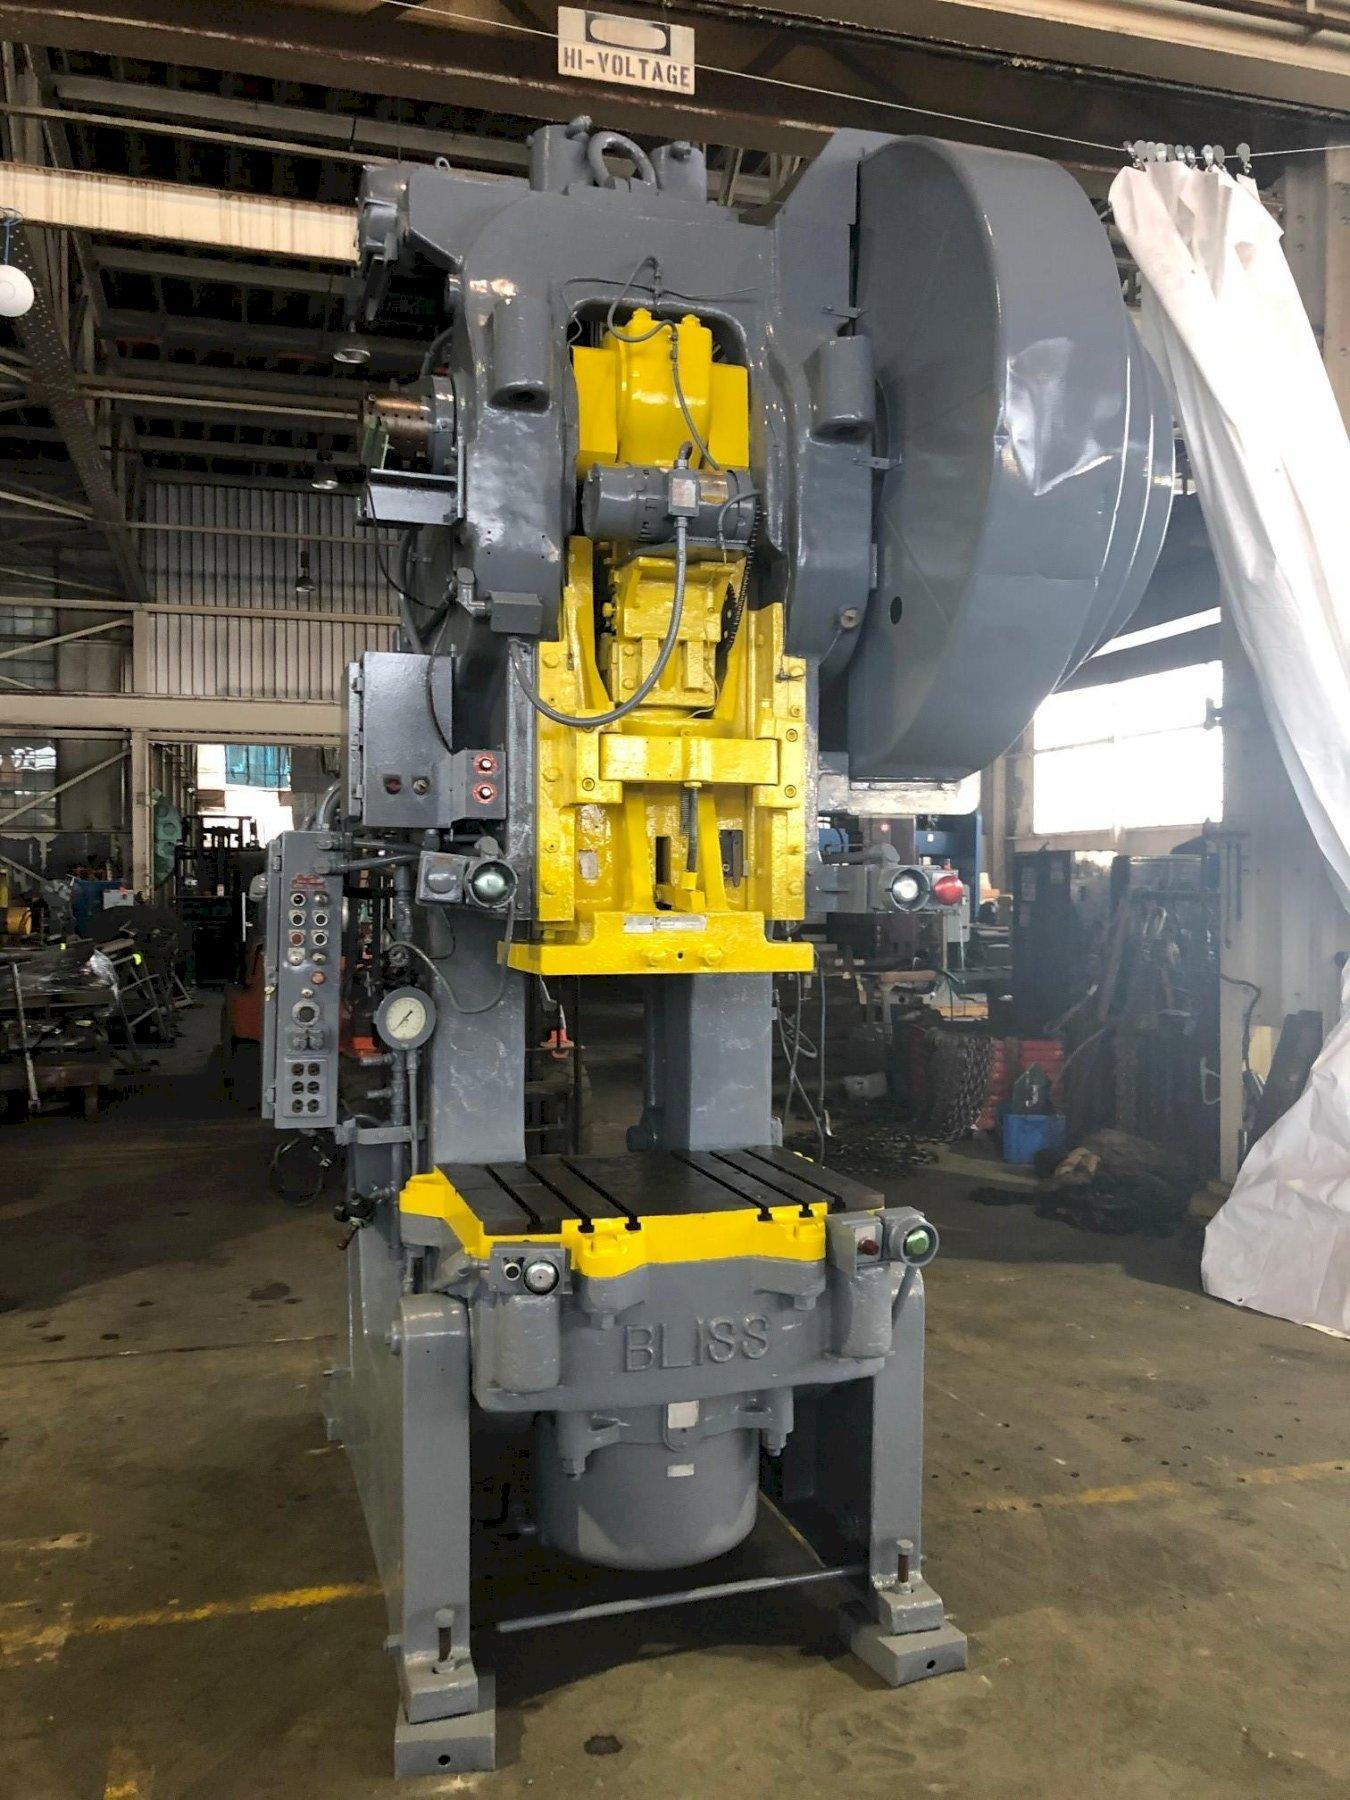 125 Ton Bliss OBI Press